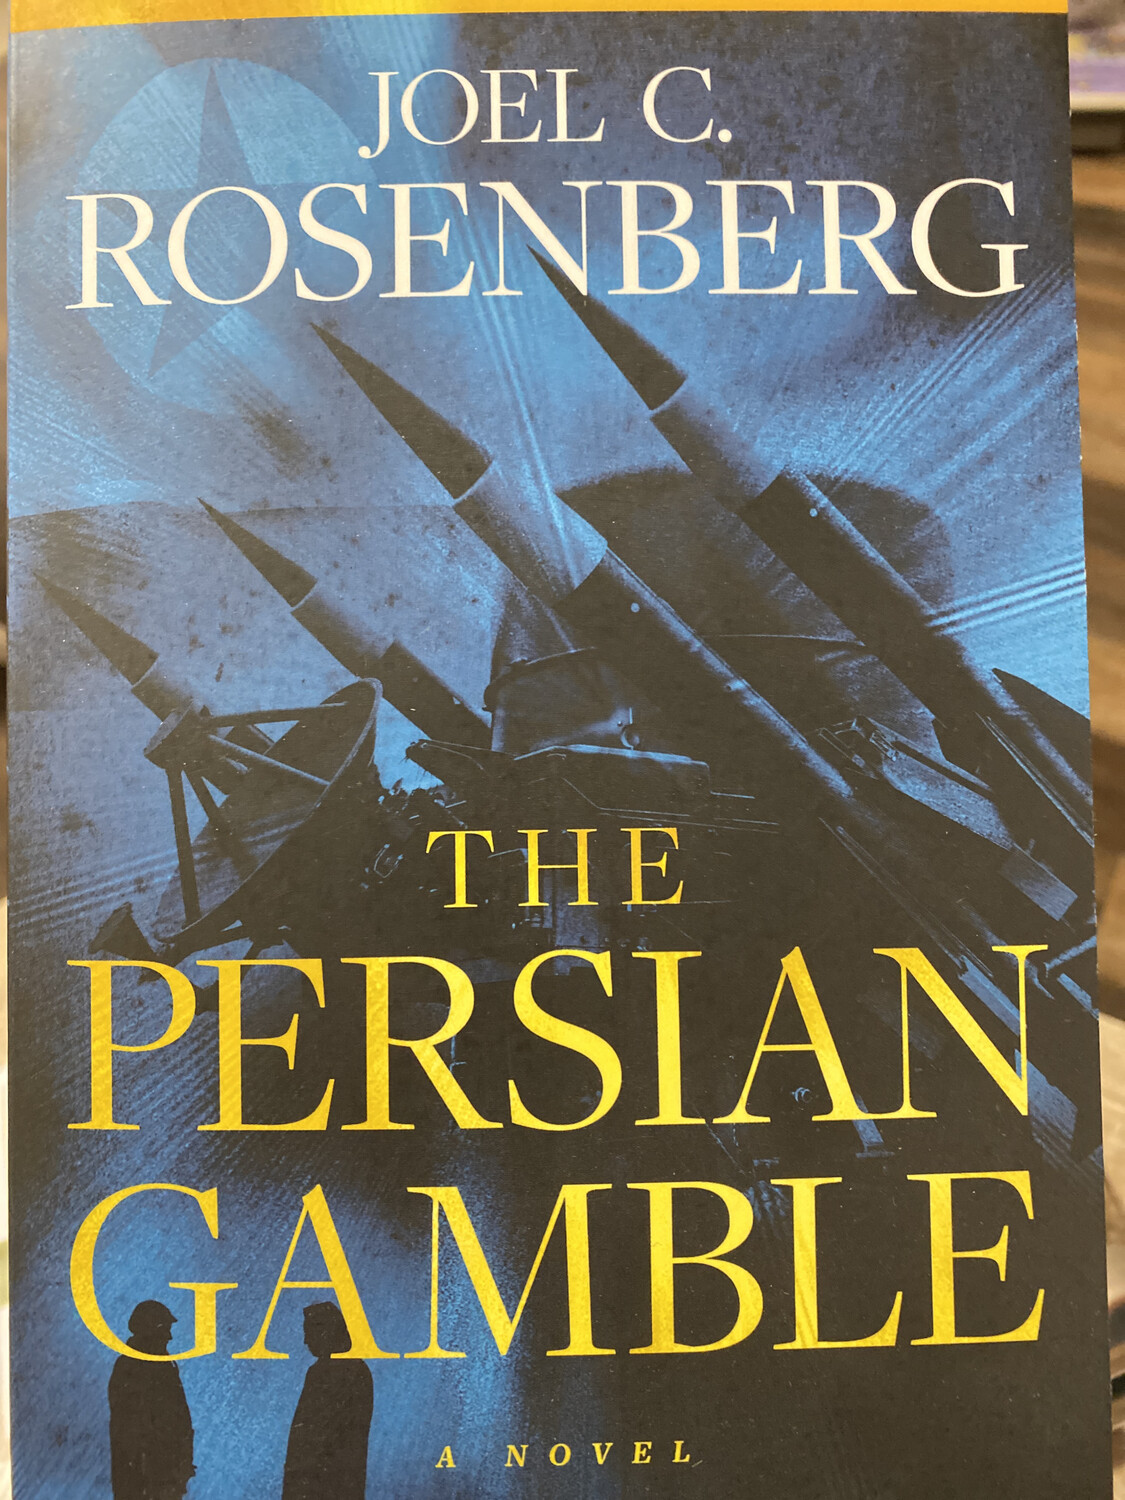 ROSENBERG, THE PERSIAN GAMBLE